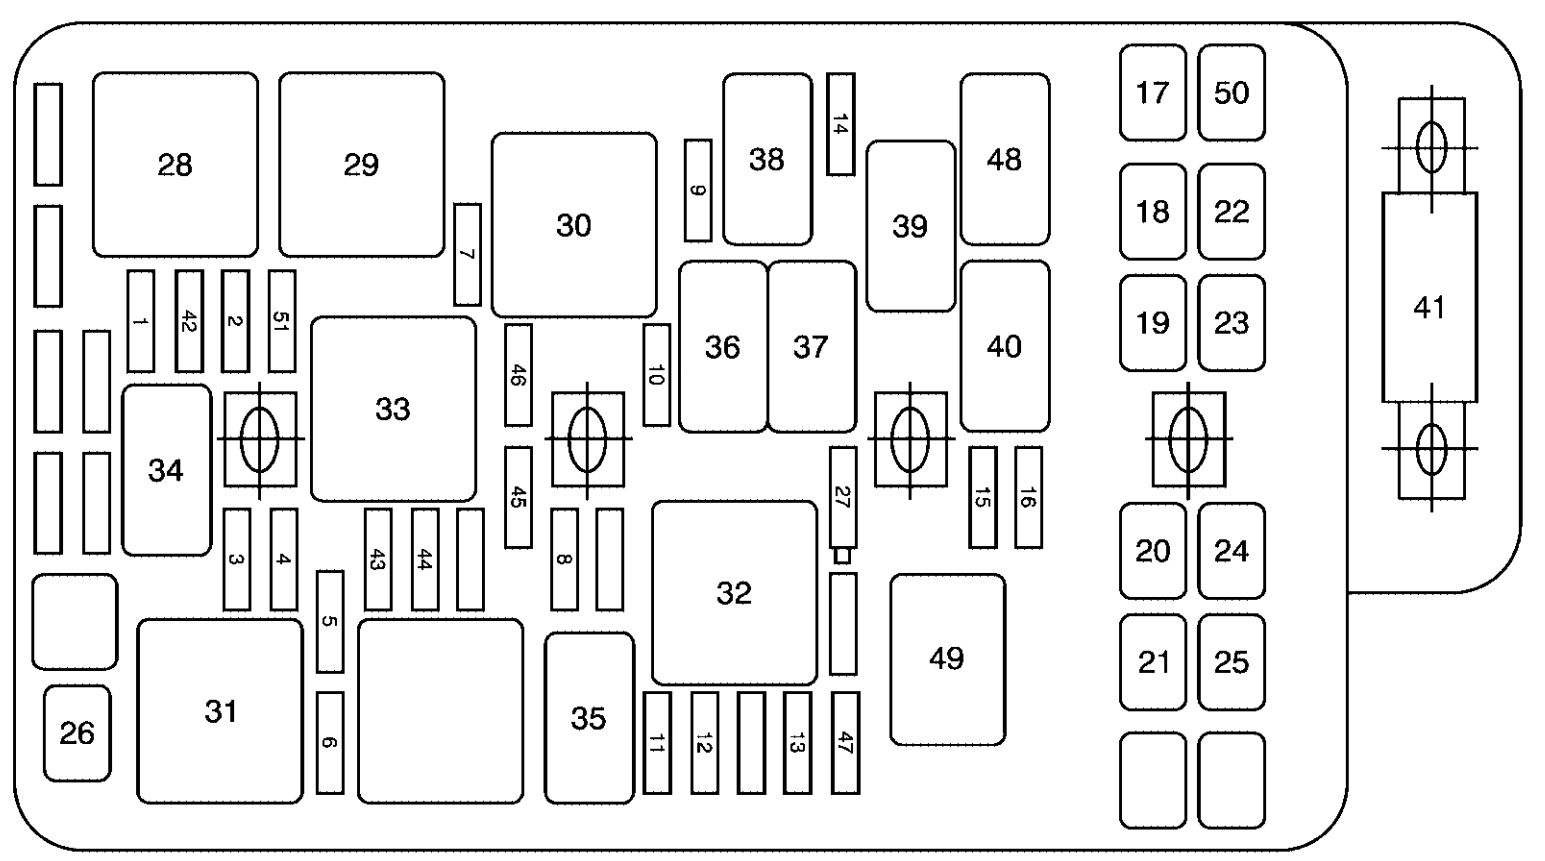 Pontiac G6 2007 Fuse Box Diagram on 2000 toyota tundra fuse diagram